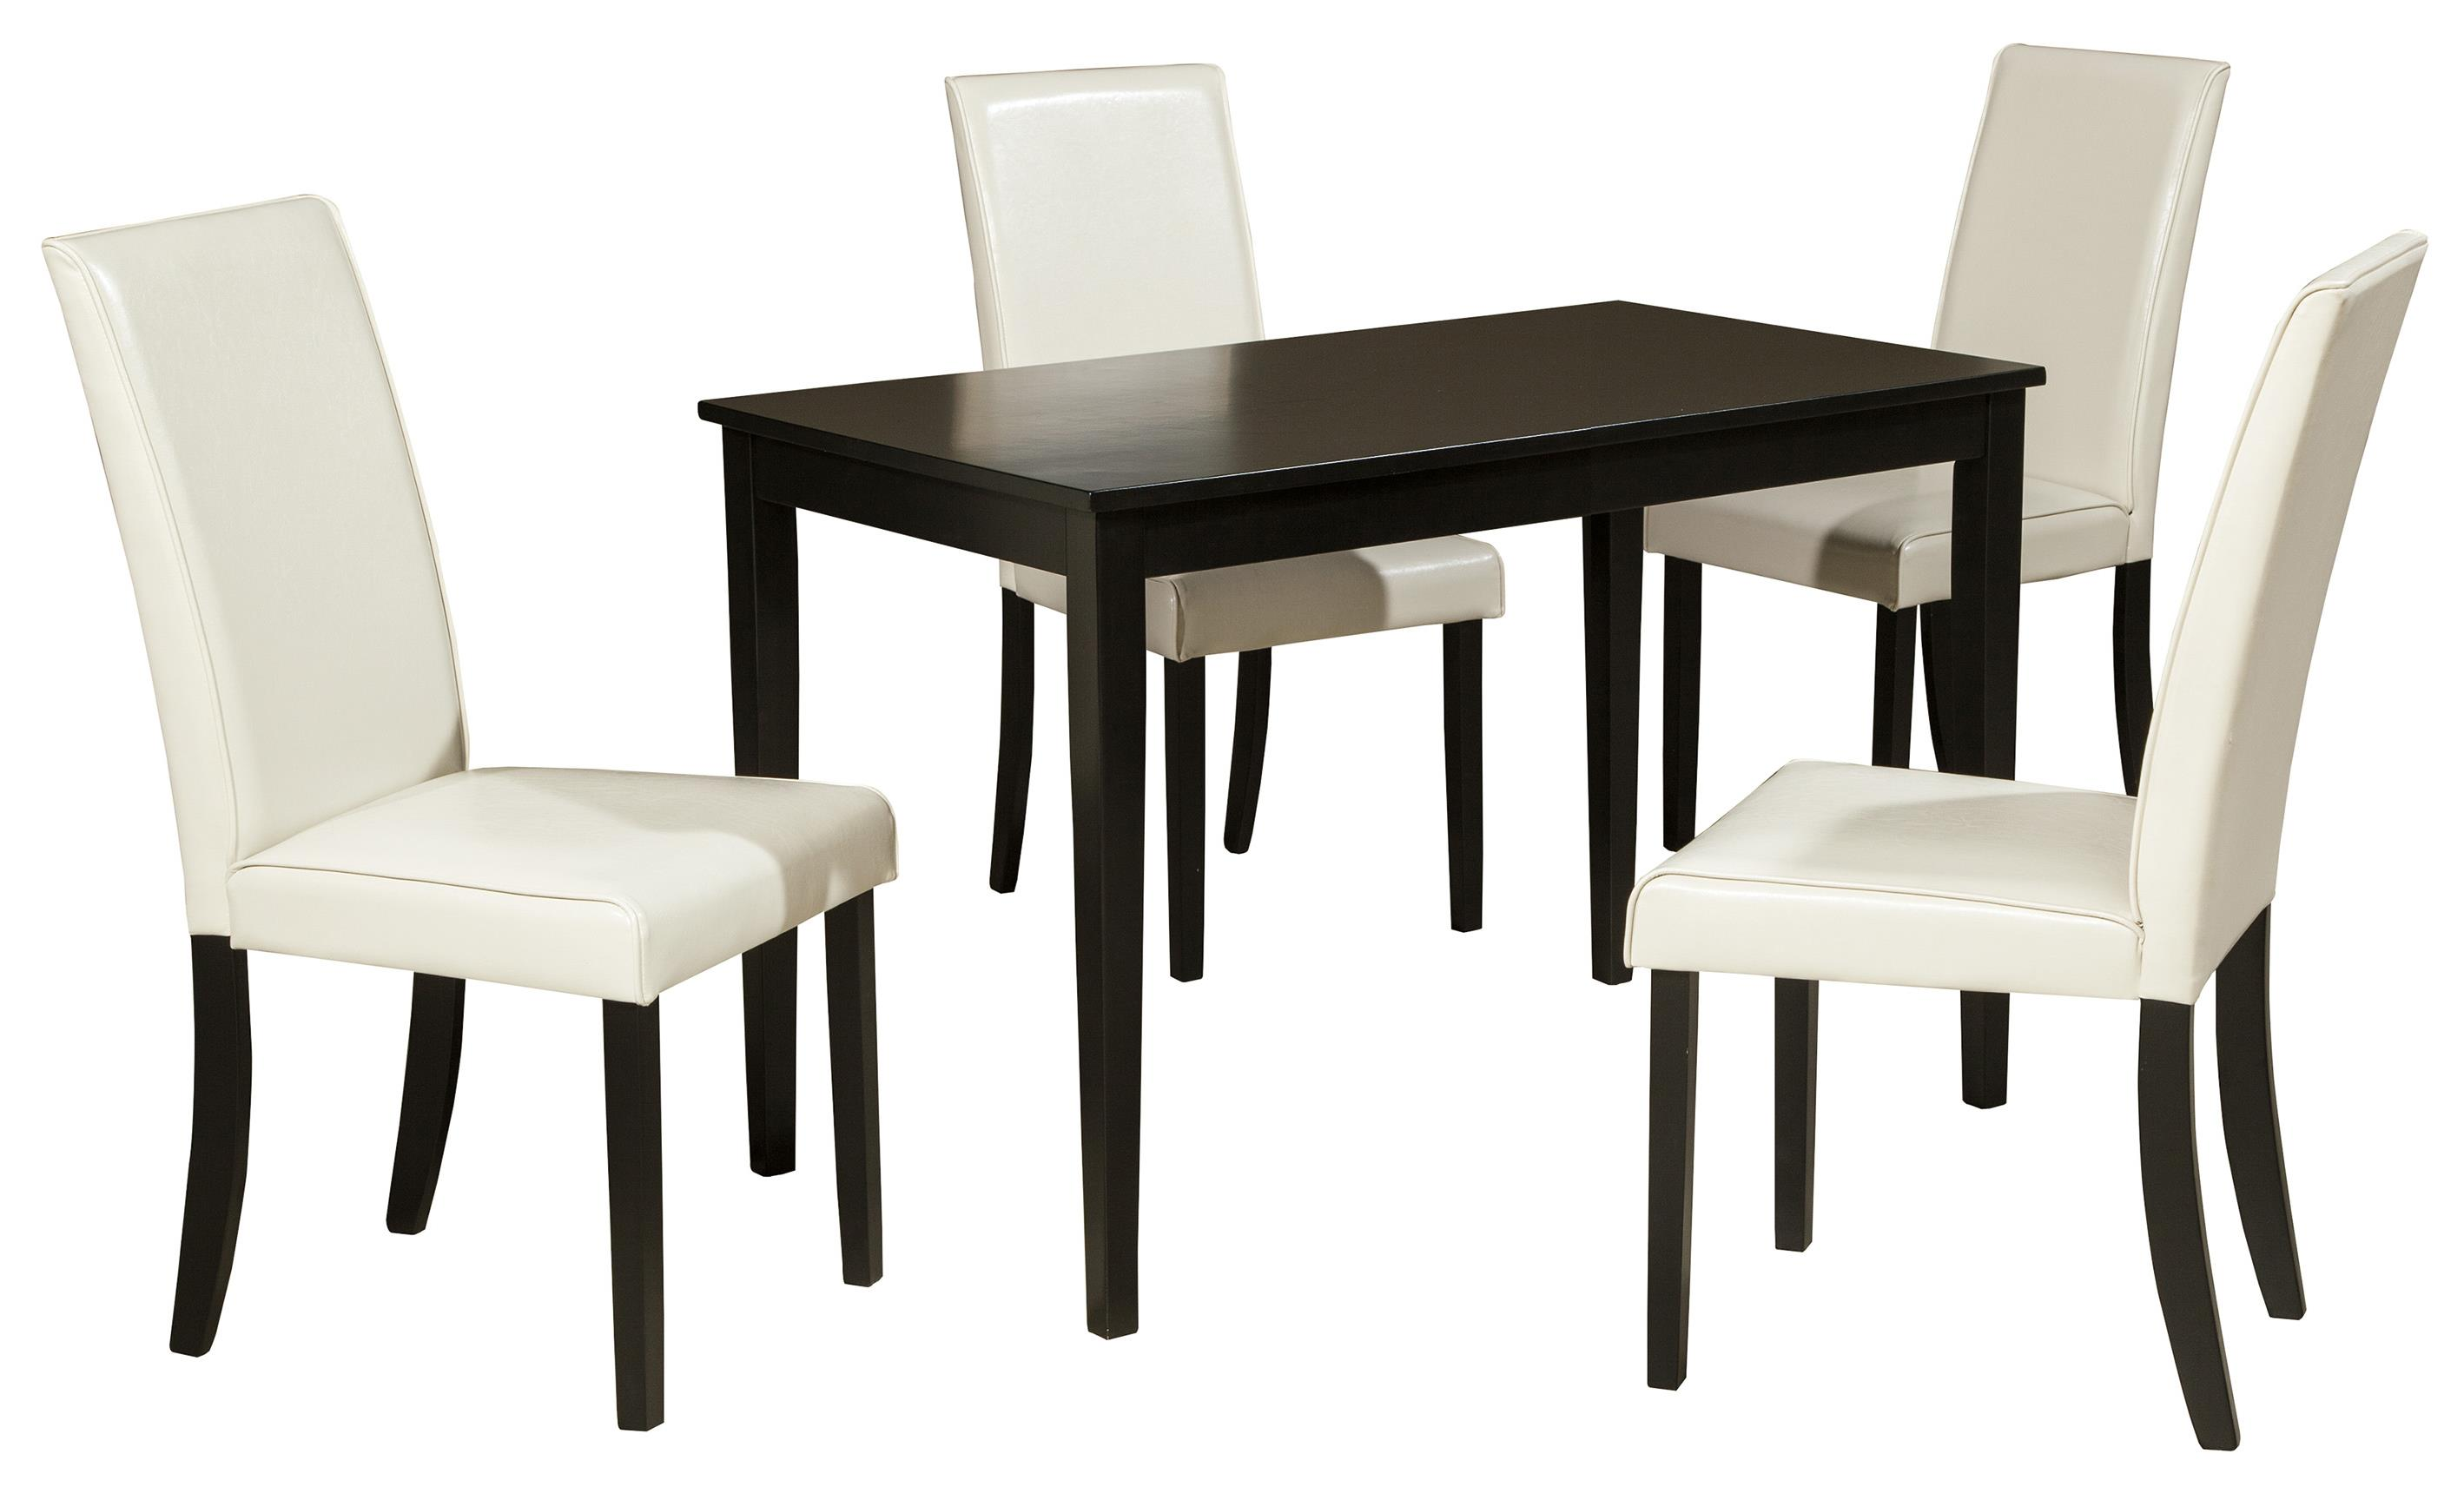 Signature Design by Ashley Kimonte 5-Piece Rectangular Table Set - Item Number: D250-25+4x02